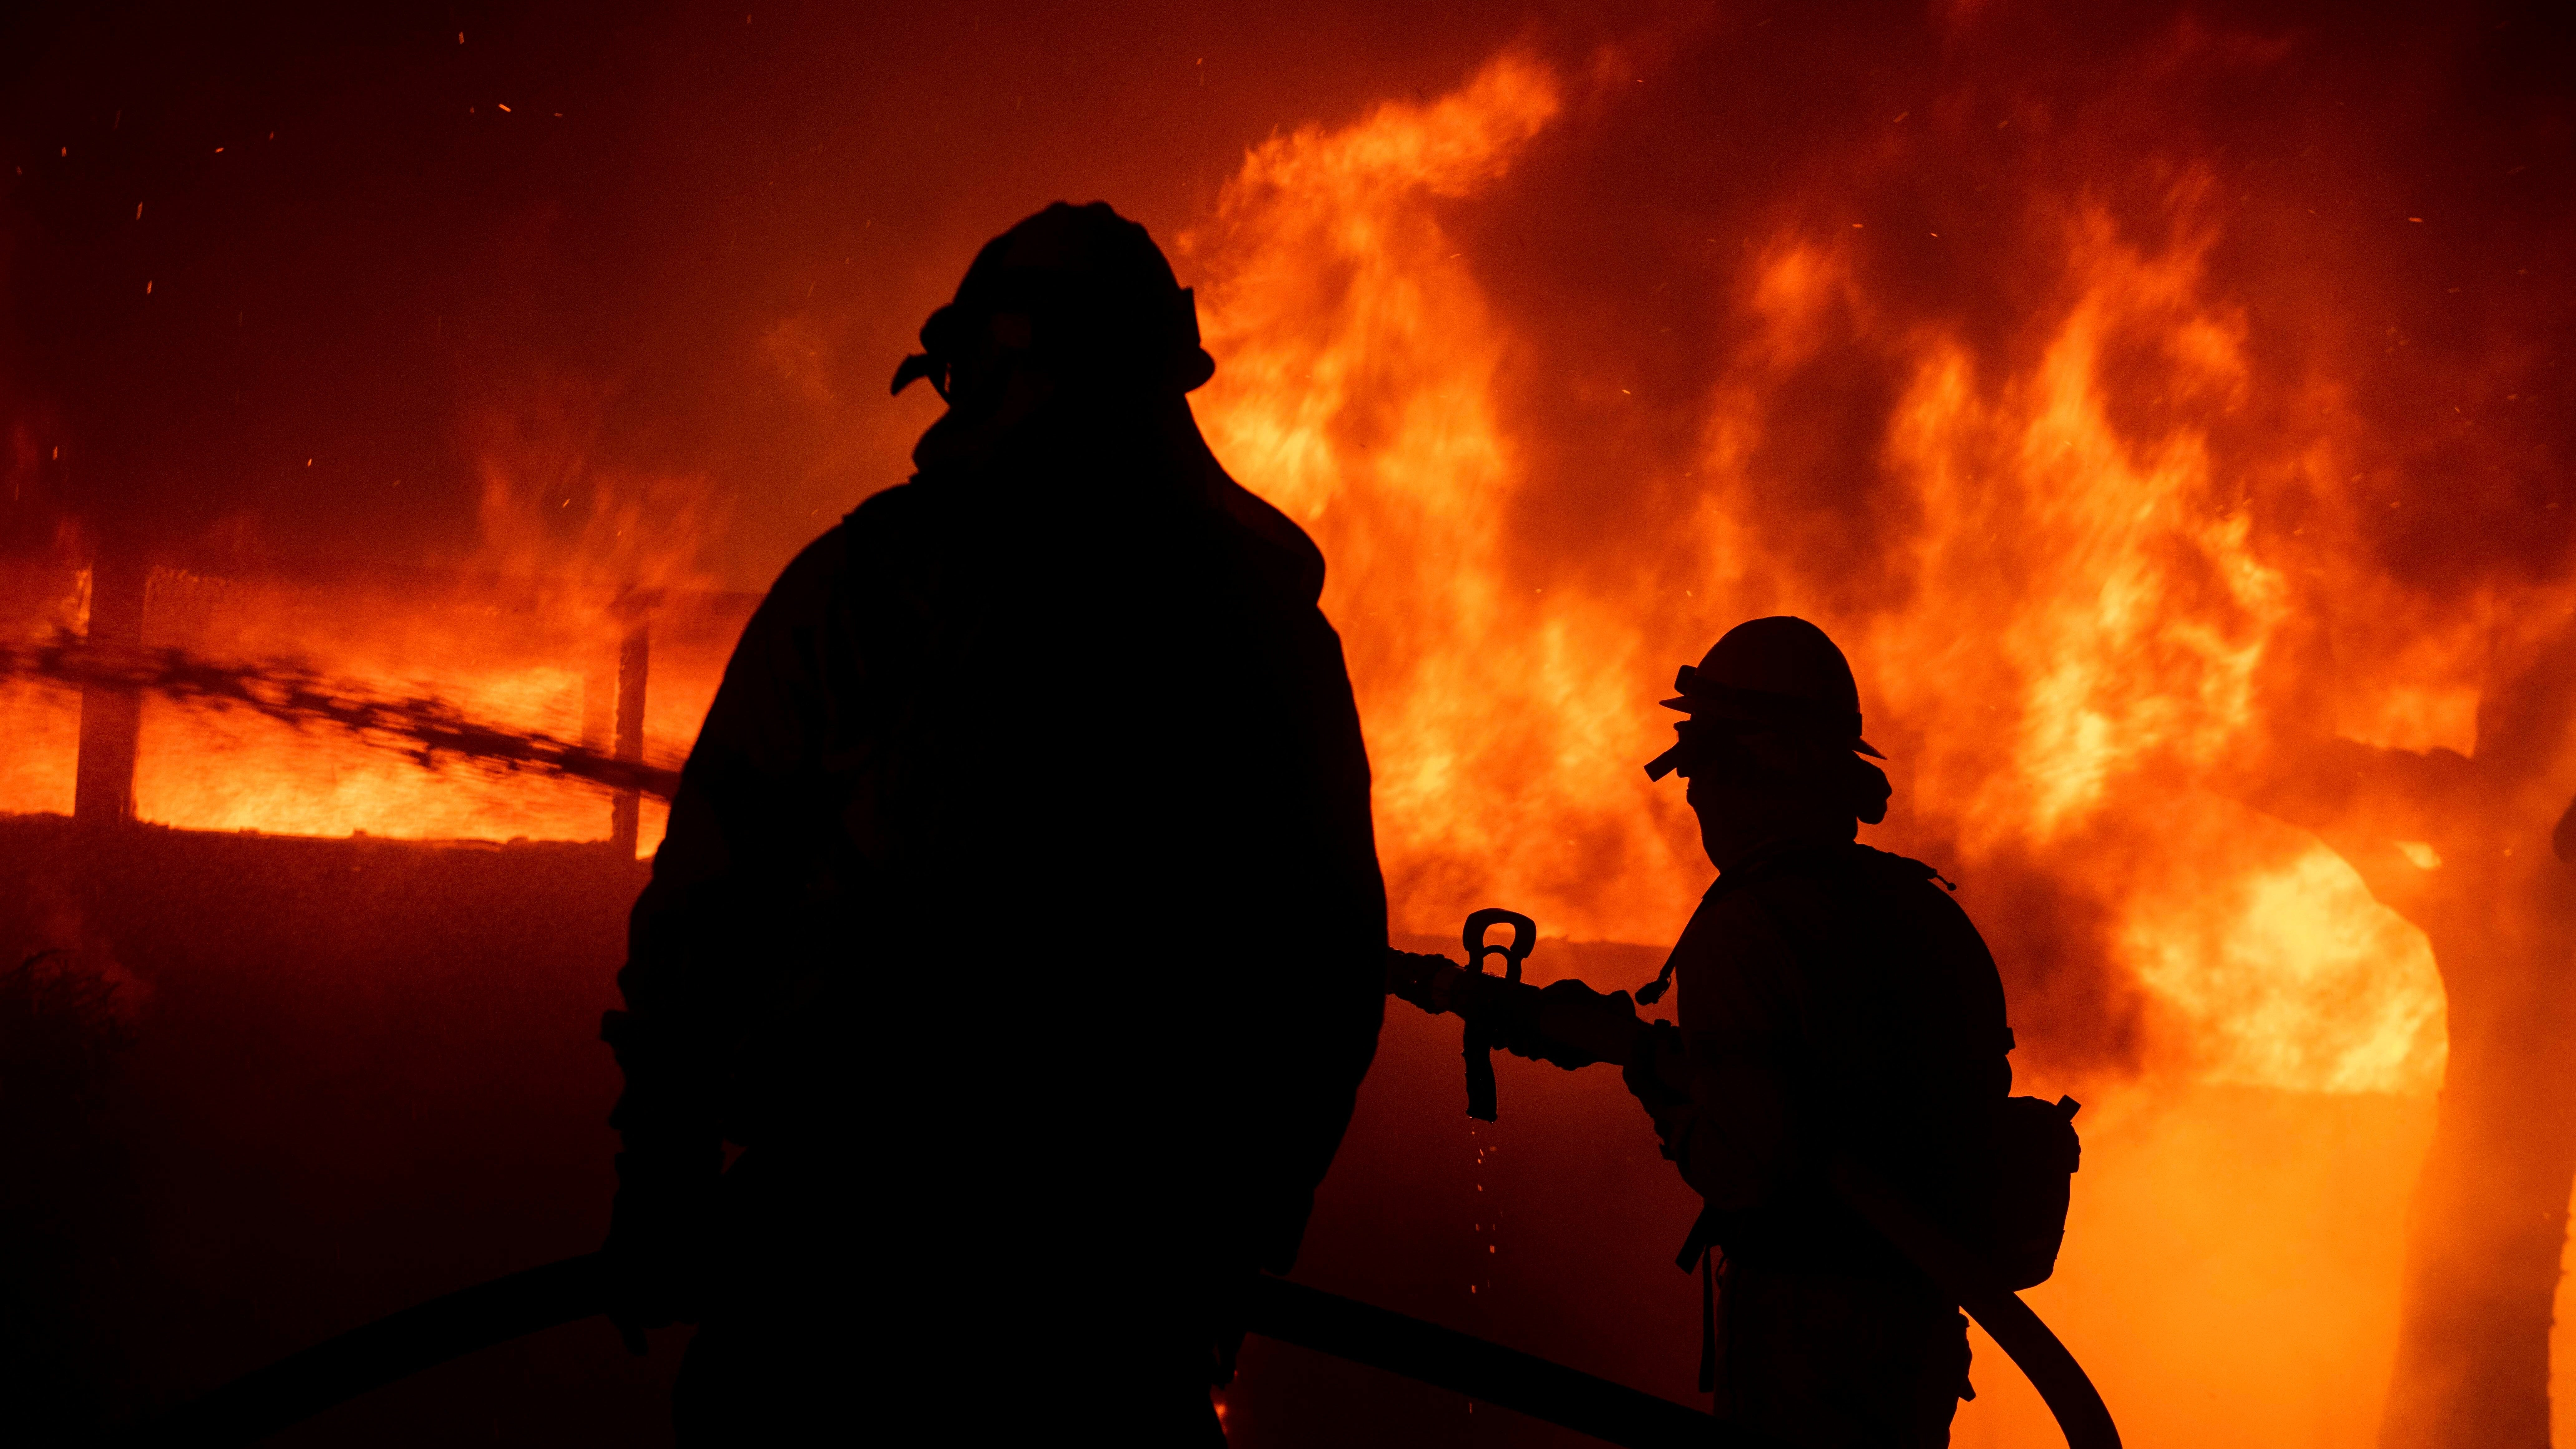 Hundreds Of Thousands Have Fled Their Homes As Wildfires Explode Across California